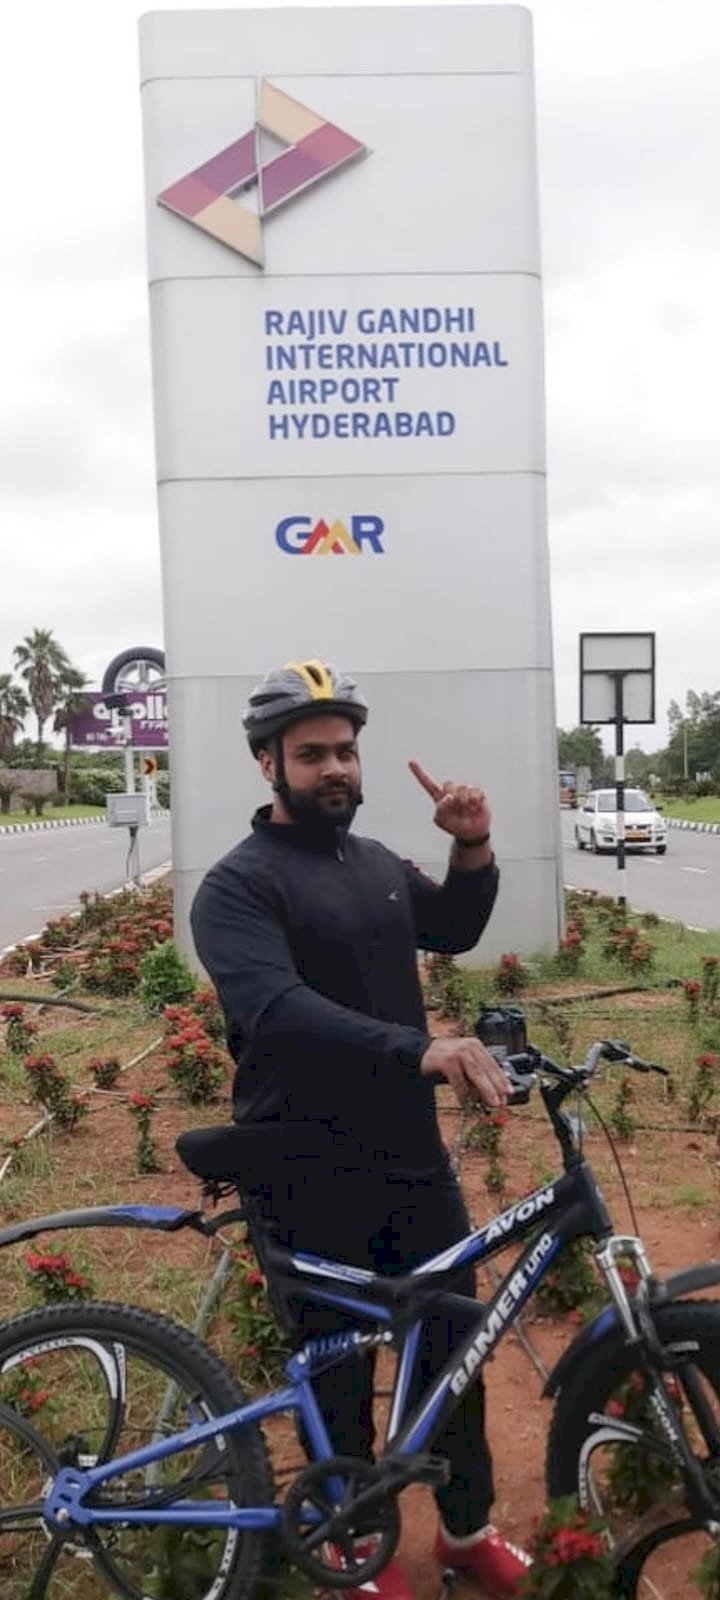 Mohsin, a physio, could not help his clientele during COVID. So he made them cycle to stay fit!